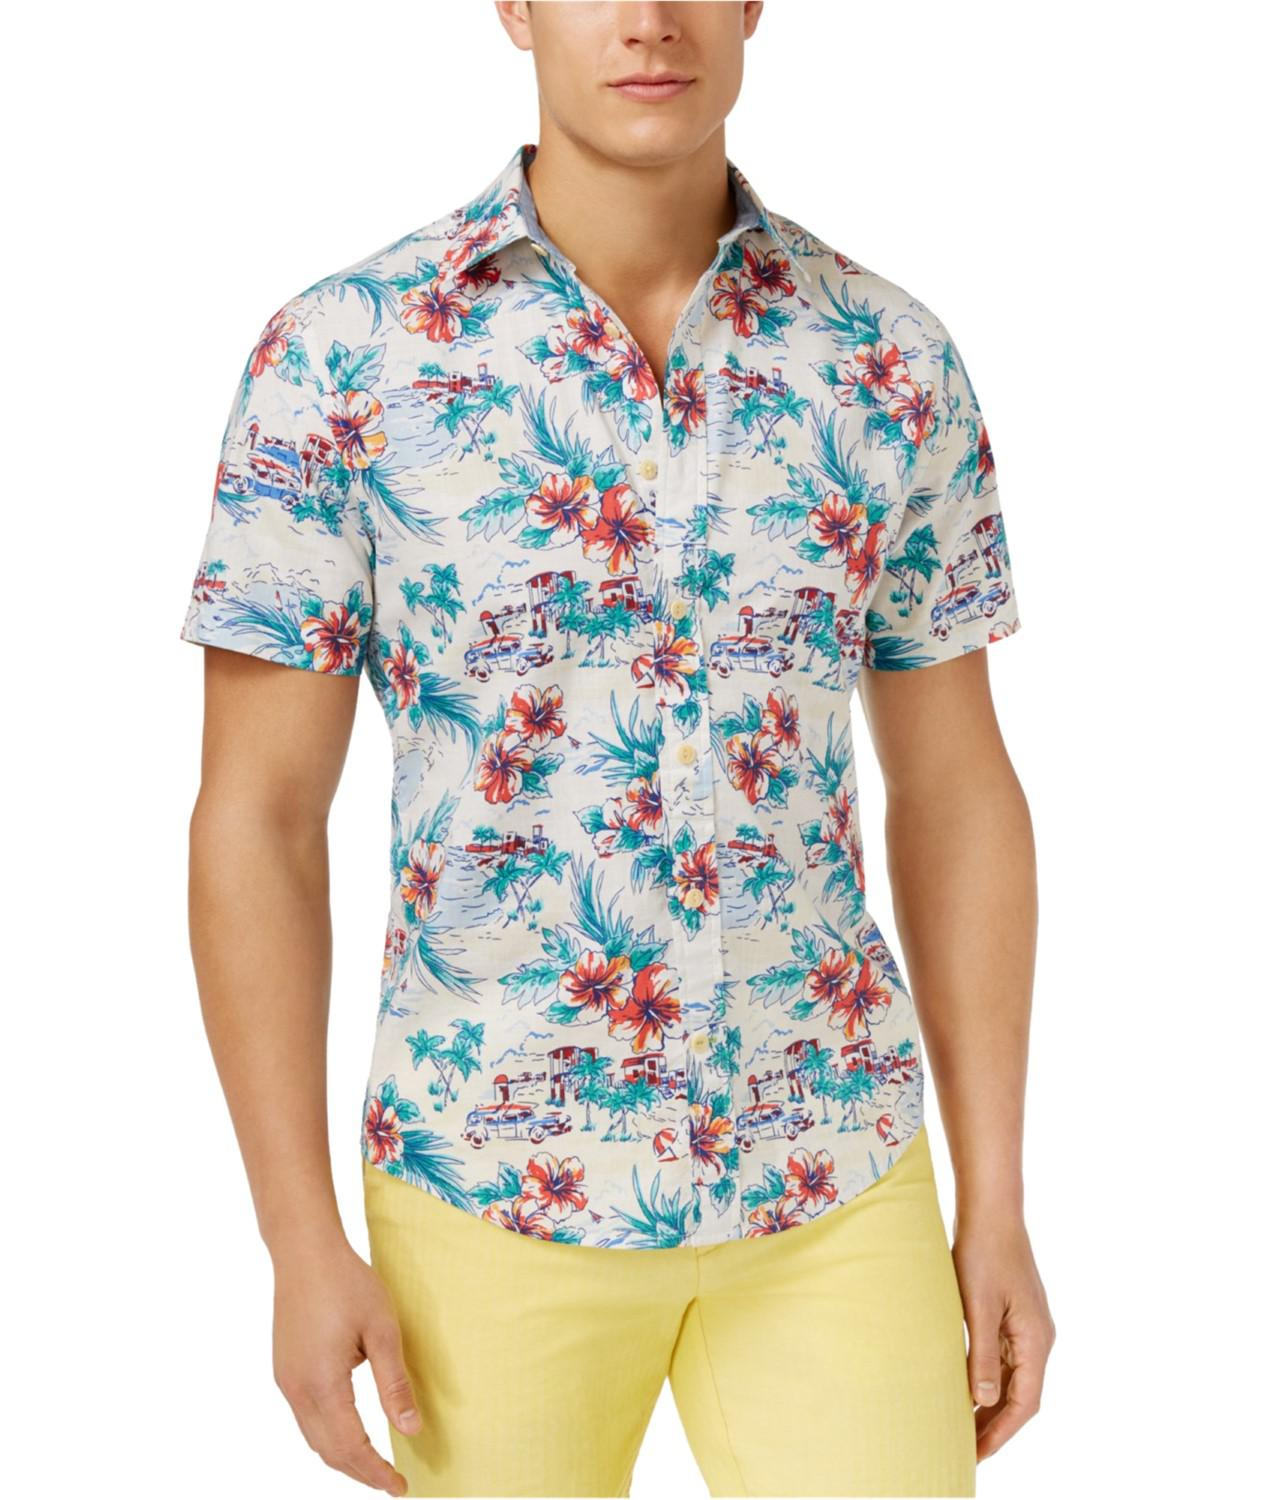 c1f138614b3b Lyst - Tommy Hilfiger Tropical Button Up Shirt White M in White for Men